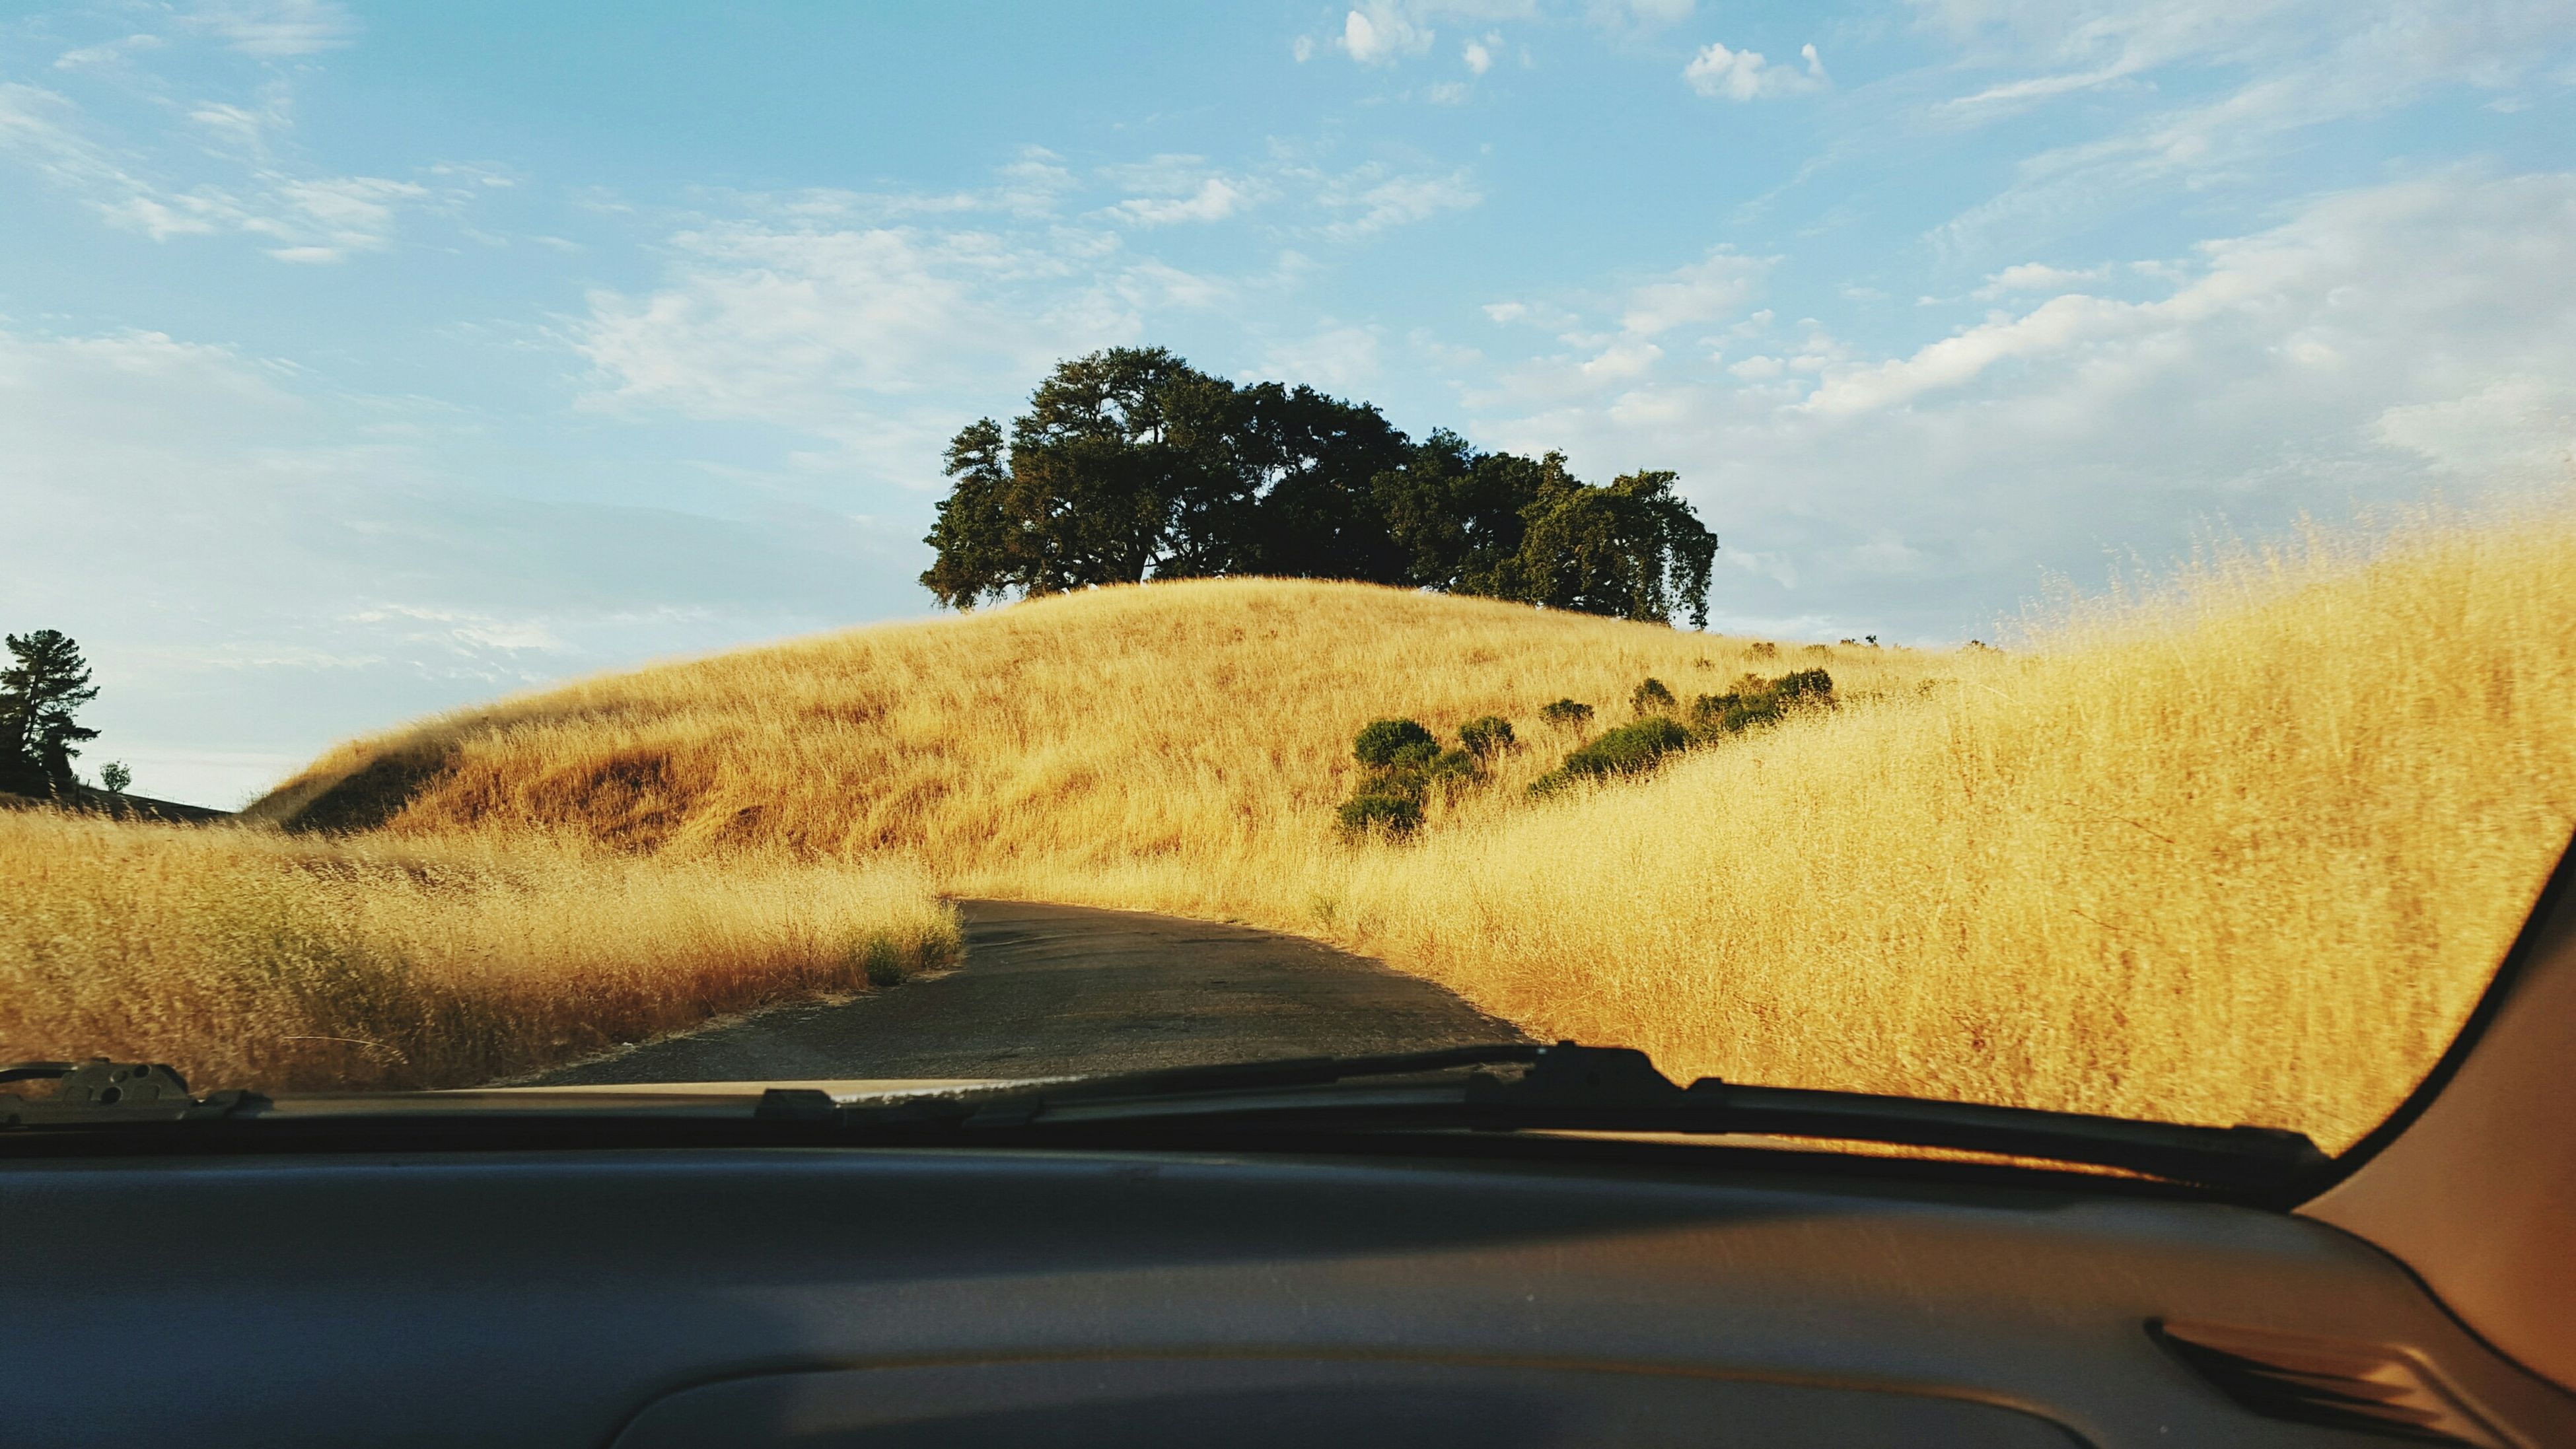 transportation, car, land vehicle, mode of transport, road, sky, tree, vehicle interior, landscape, windshield, sunlight, car interior, travel, part of, nature, cropped, window, day, cloud, glass - material